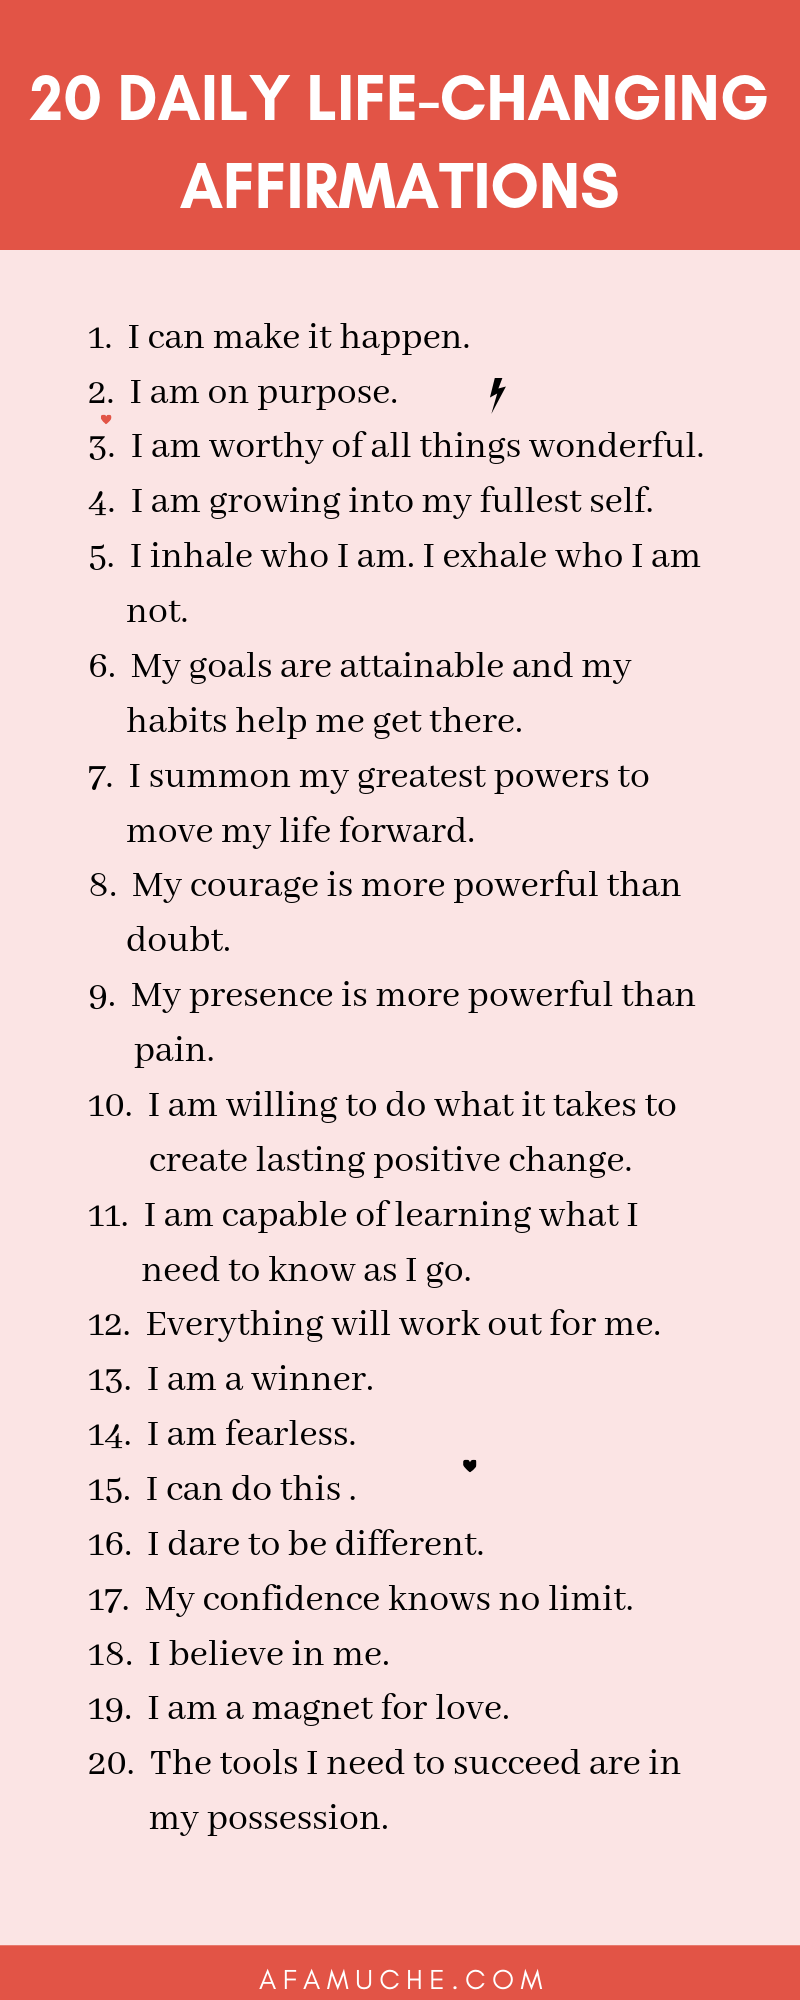 20 Daily life-changing affirmations infographics